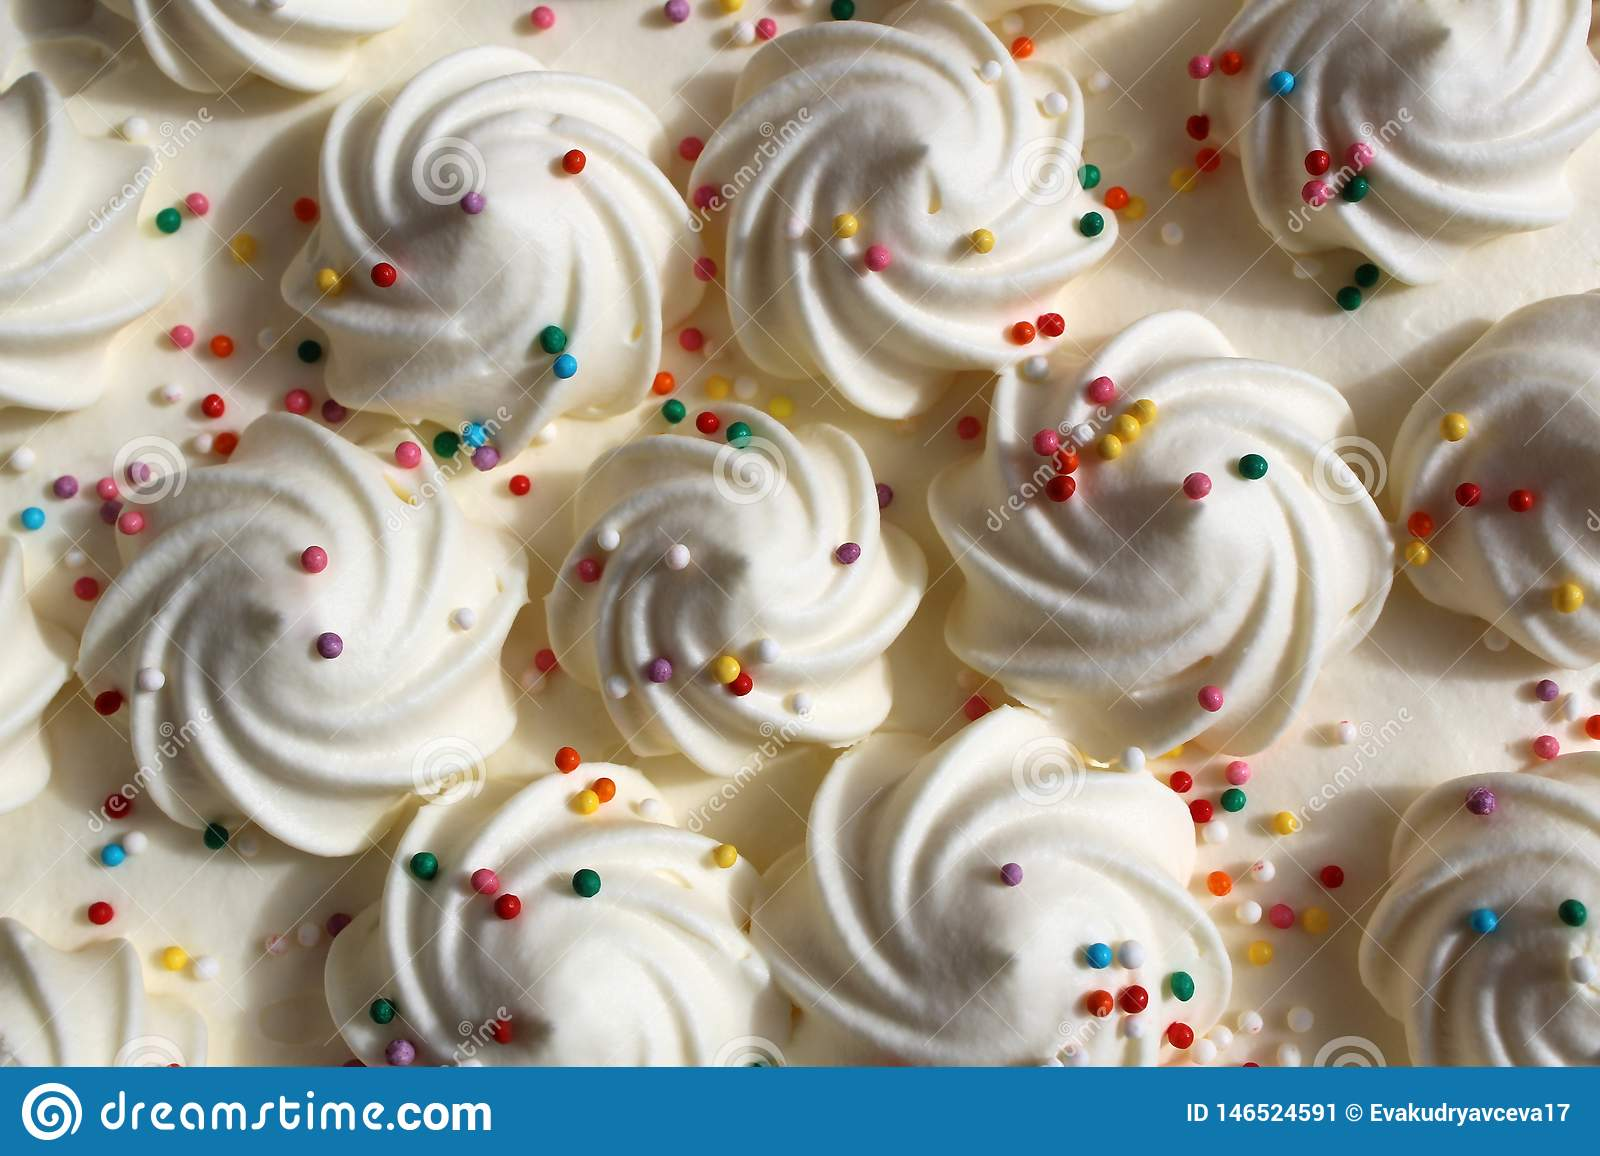 Festive curls for white cream cake with multicolored sprinkles